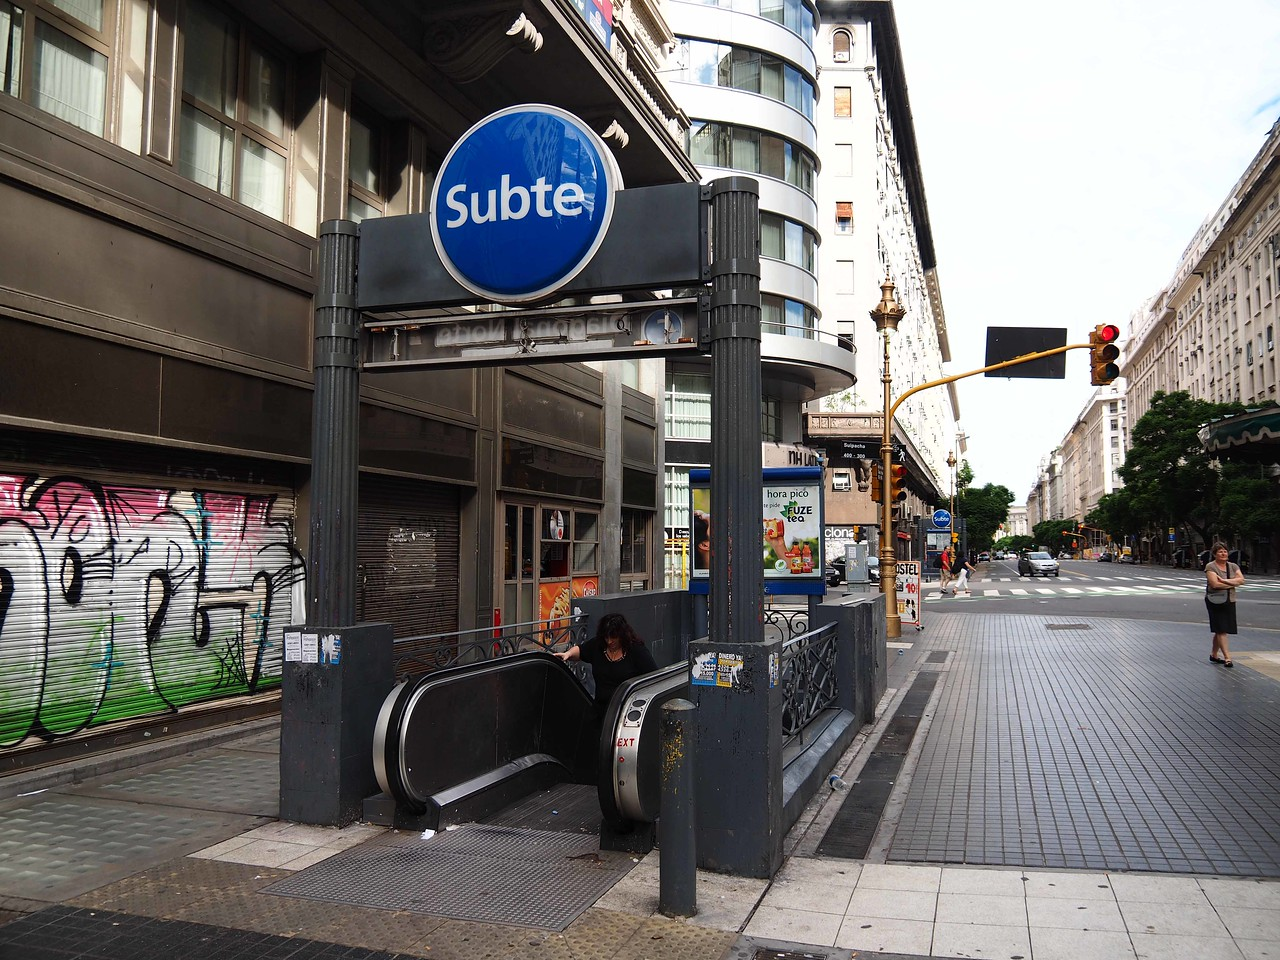 The Subte (subway)